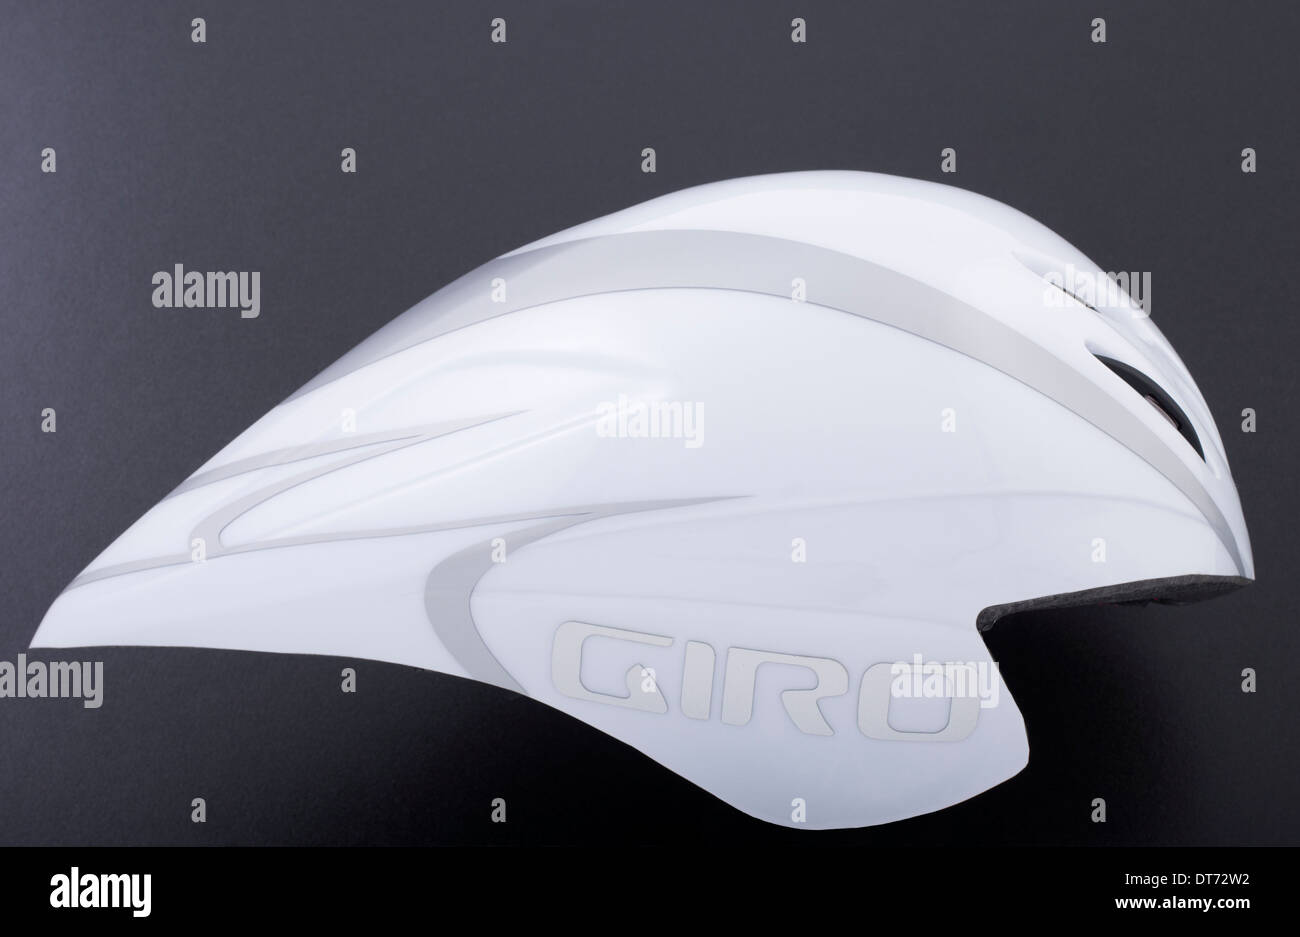 Giro Advantage2 aero road race cycling / triatlón casco Imagen De Stock